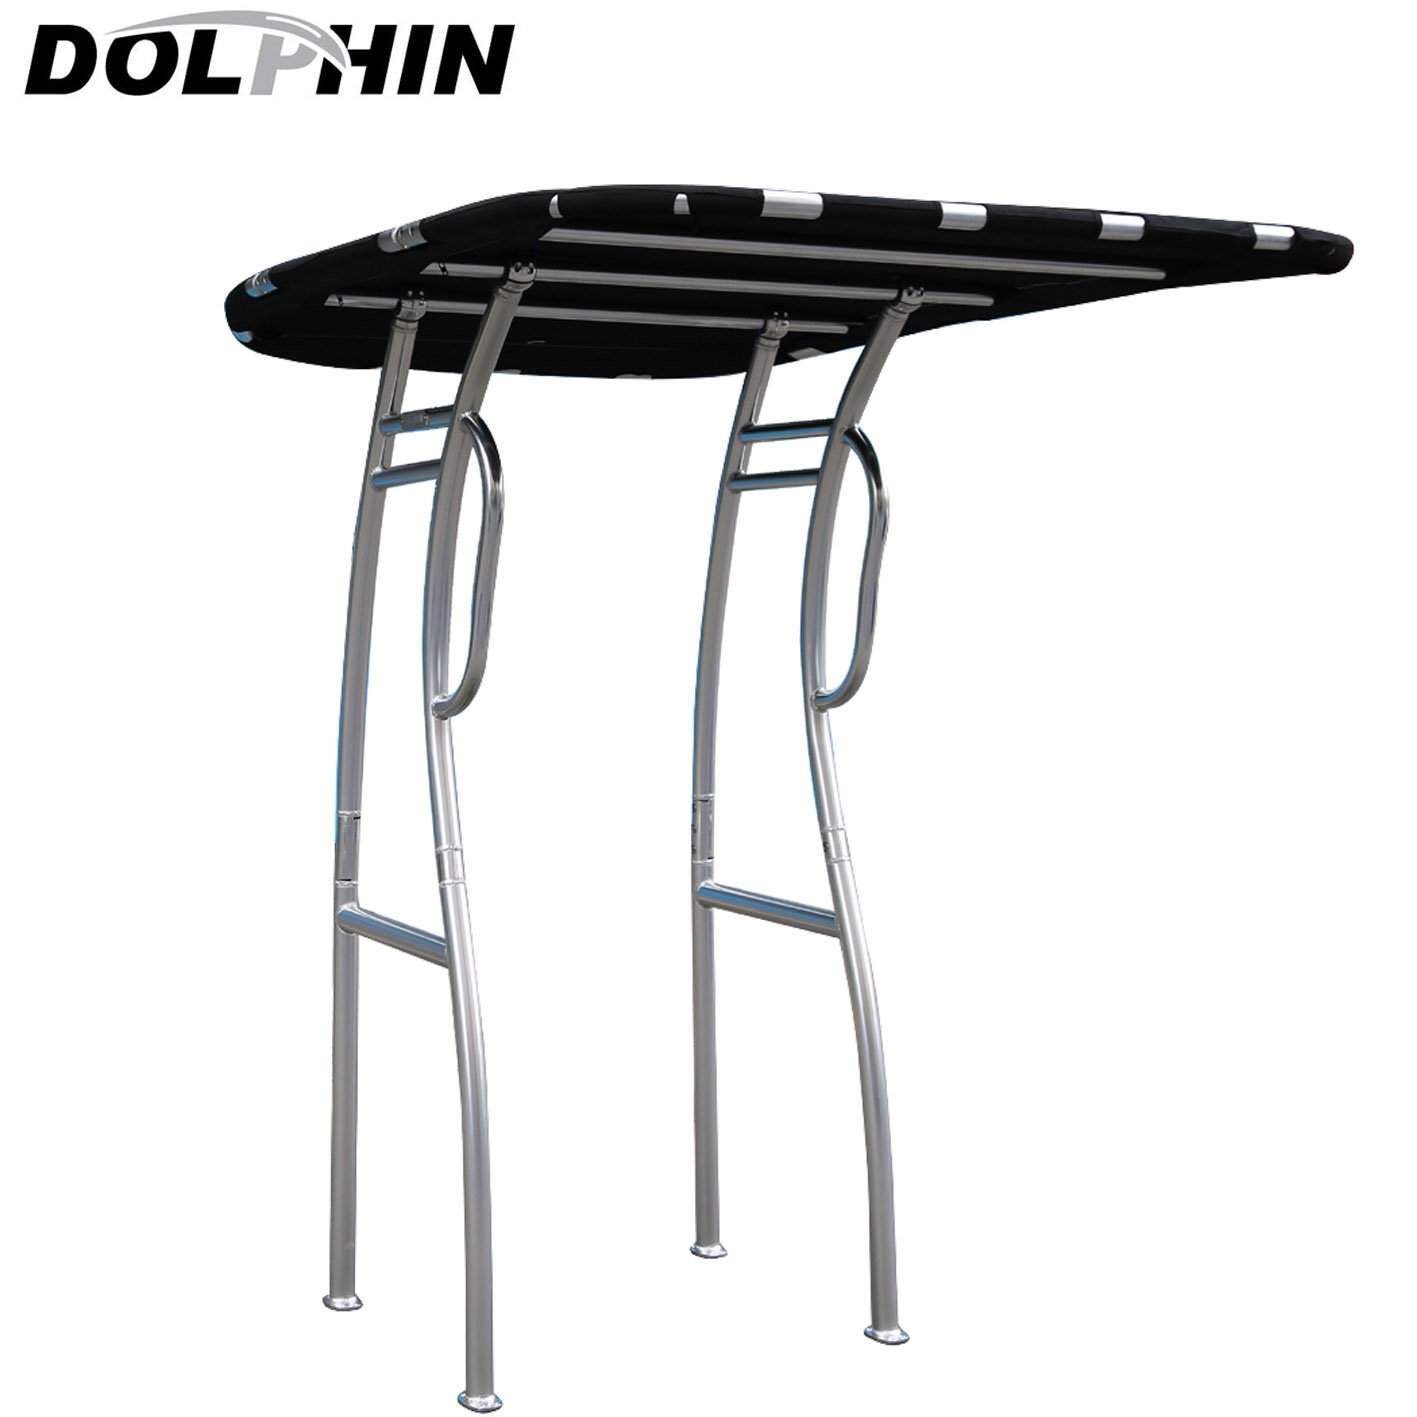 Amazon.com  Dolphin Pro S2 T-TOP Black Canopy Anodized Aluminum for Center Console Fishing Boats  Sports u0026 Outdoors  sc 1 st  Amazon.com & Amazon.com : Dolphin Pro S2 T-TOP Black Canopy Anodized Aluminum ...